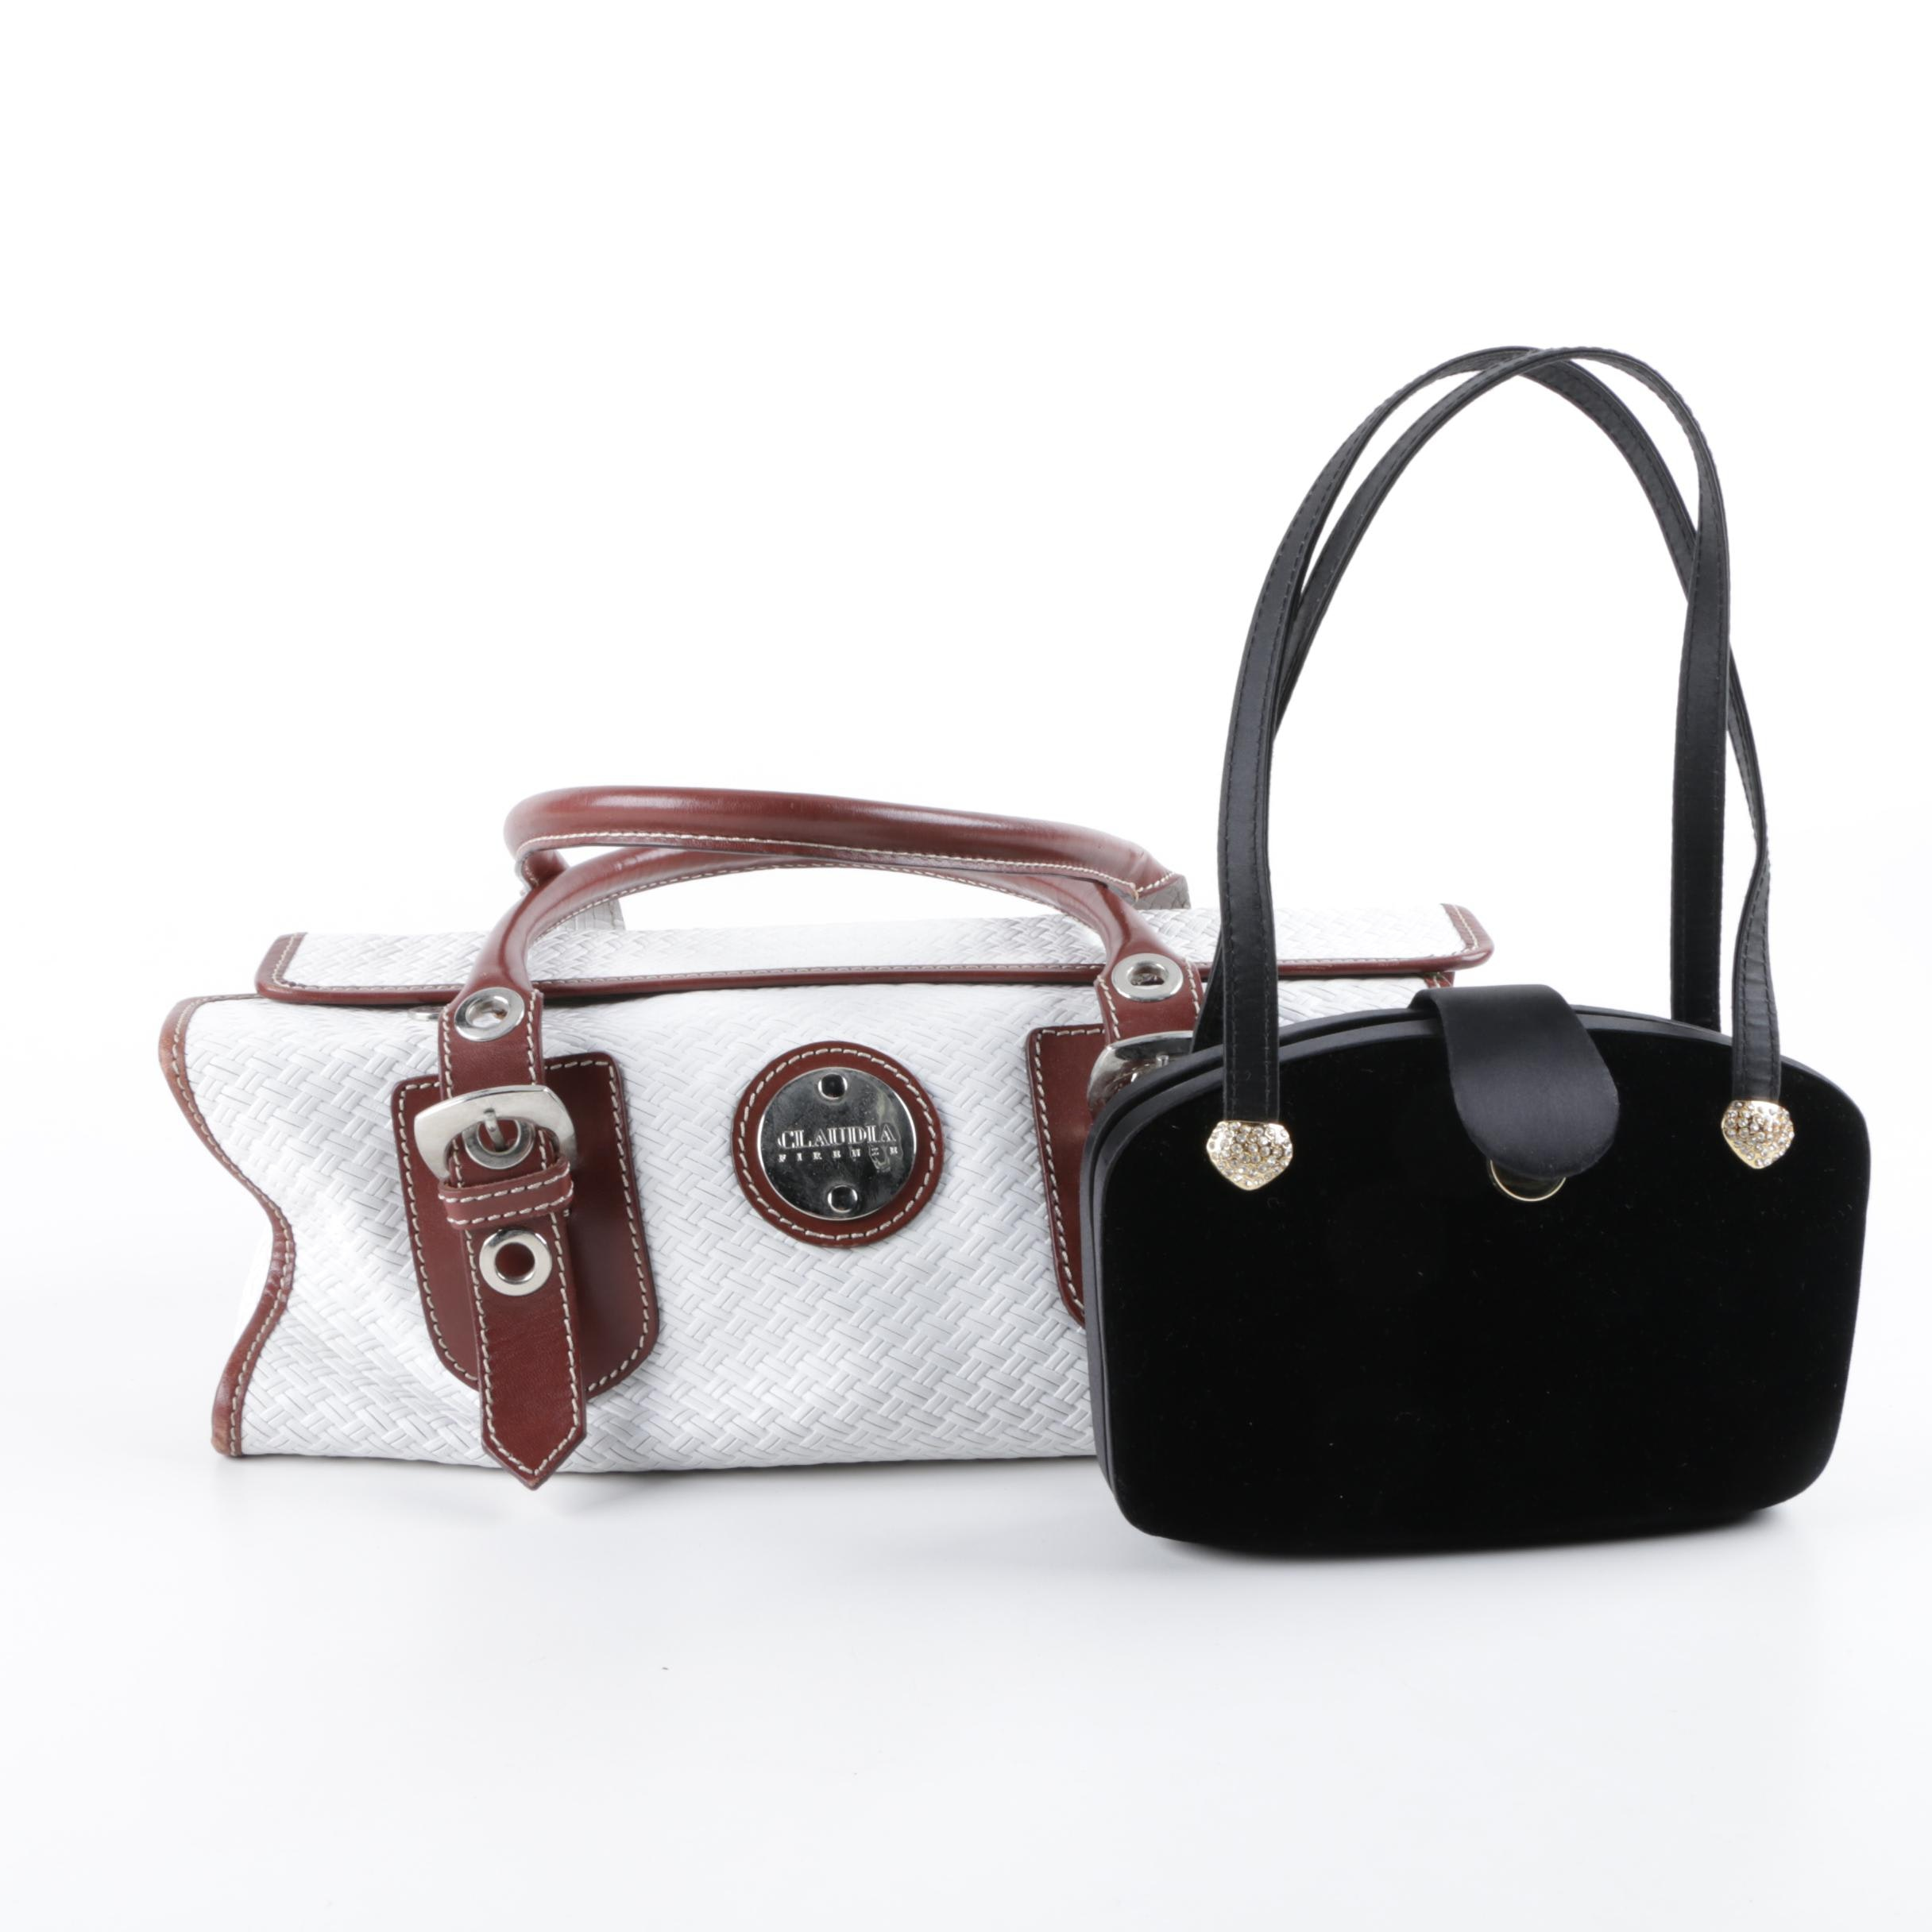 Top Handle Bags Including Claudia Firenze